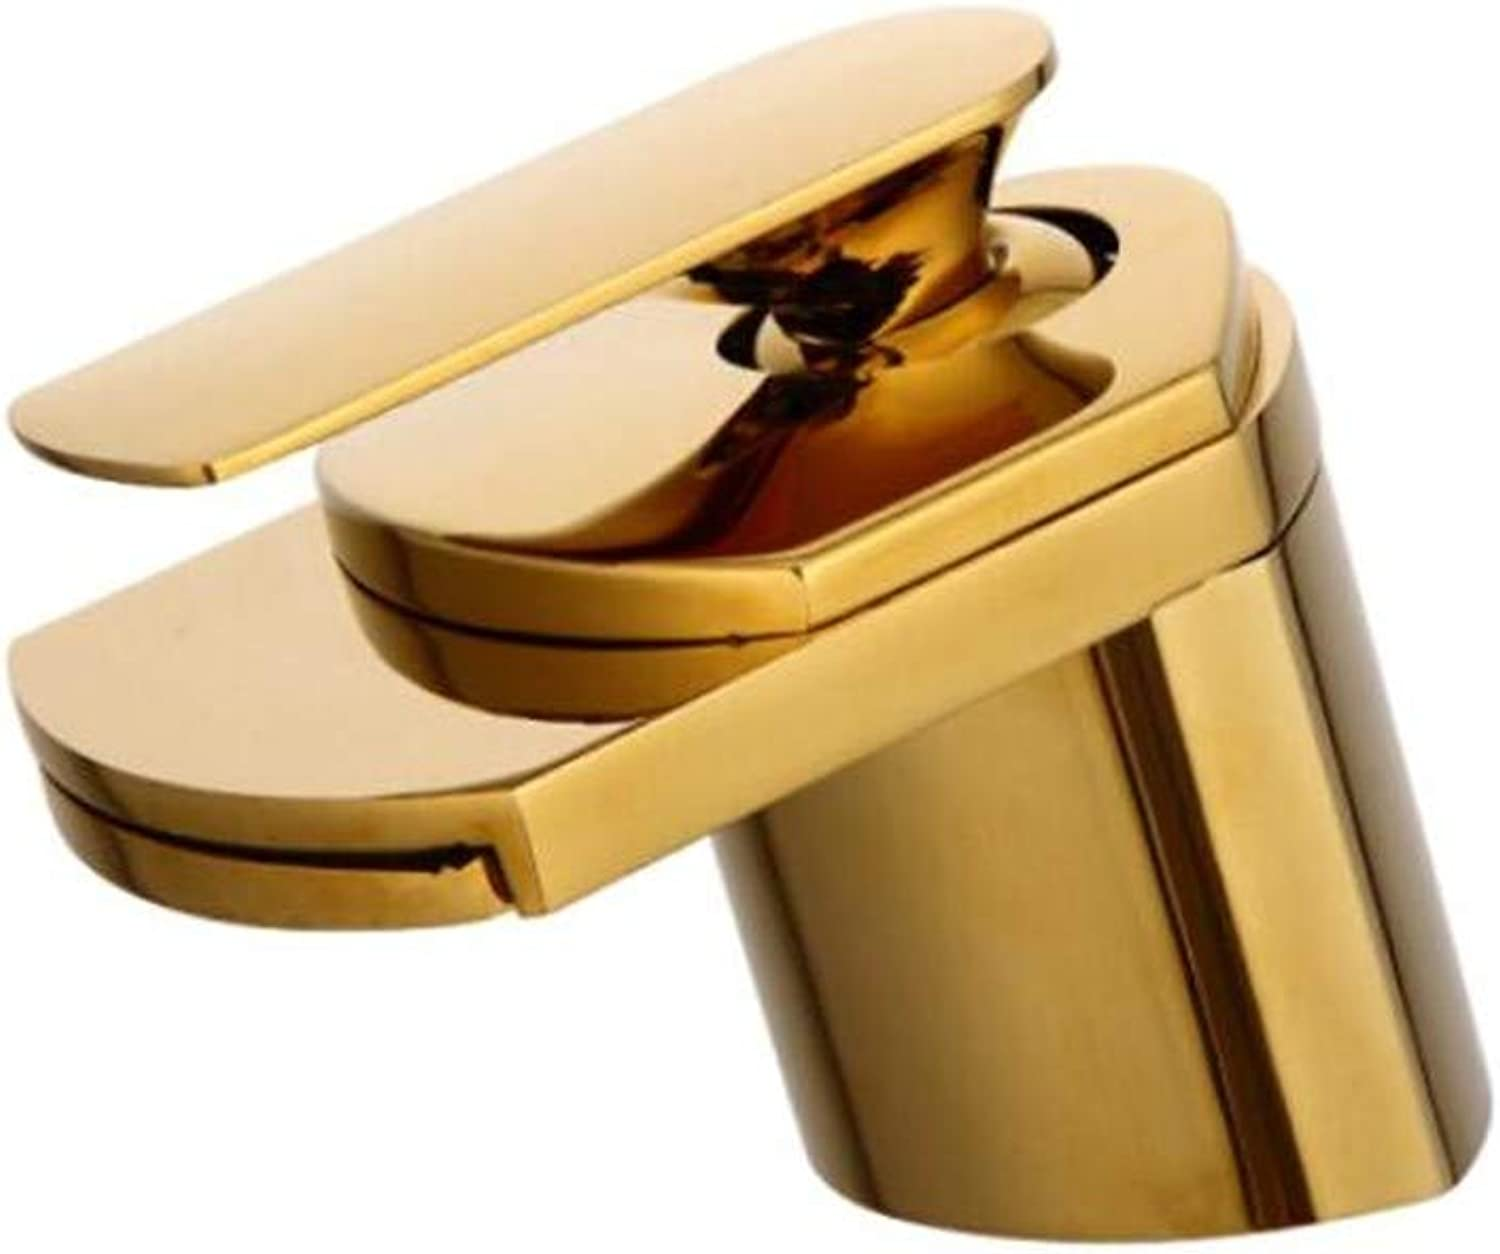 Faucet Waste Mono Spoutcopper Cold and Hot Basin Faucet Single Hole Toilet Washbasin Basin Basin Faucet Waterfall Faucet Washroom Lengthening Table Basin Faucet golden Short Style